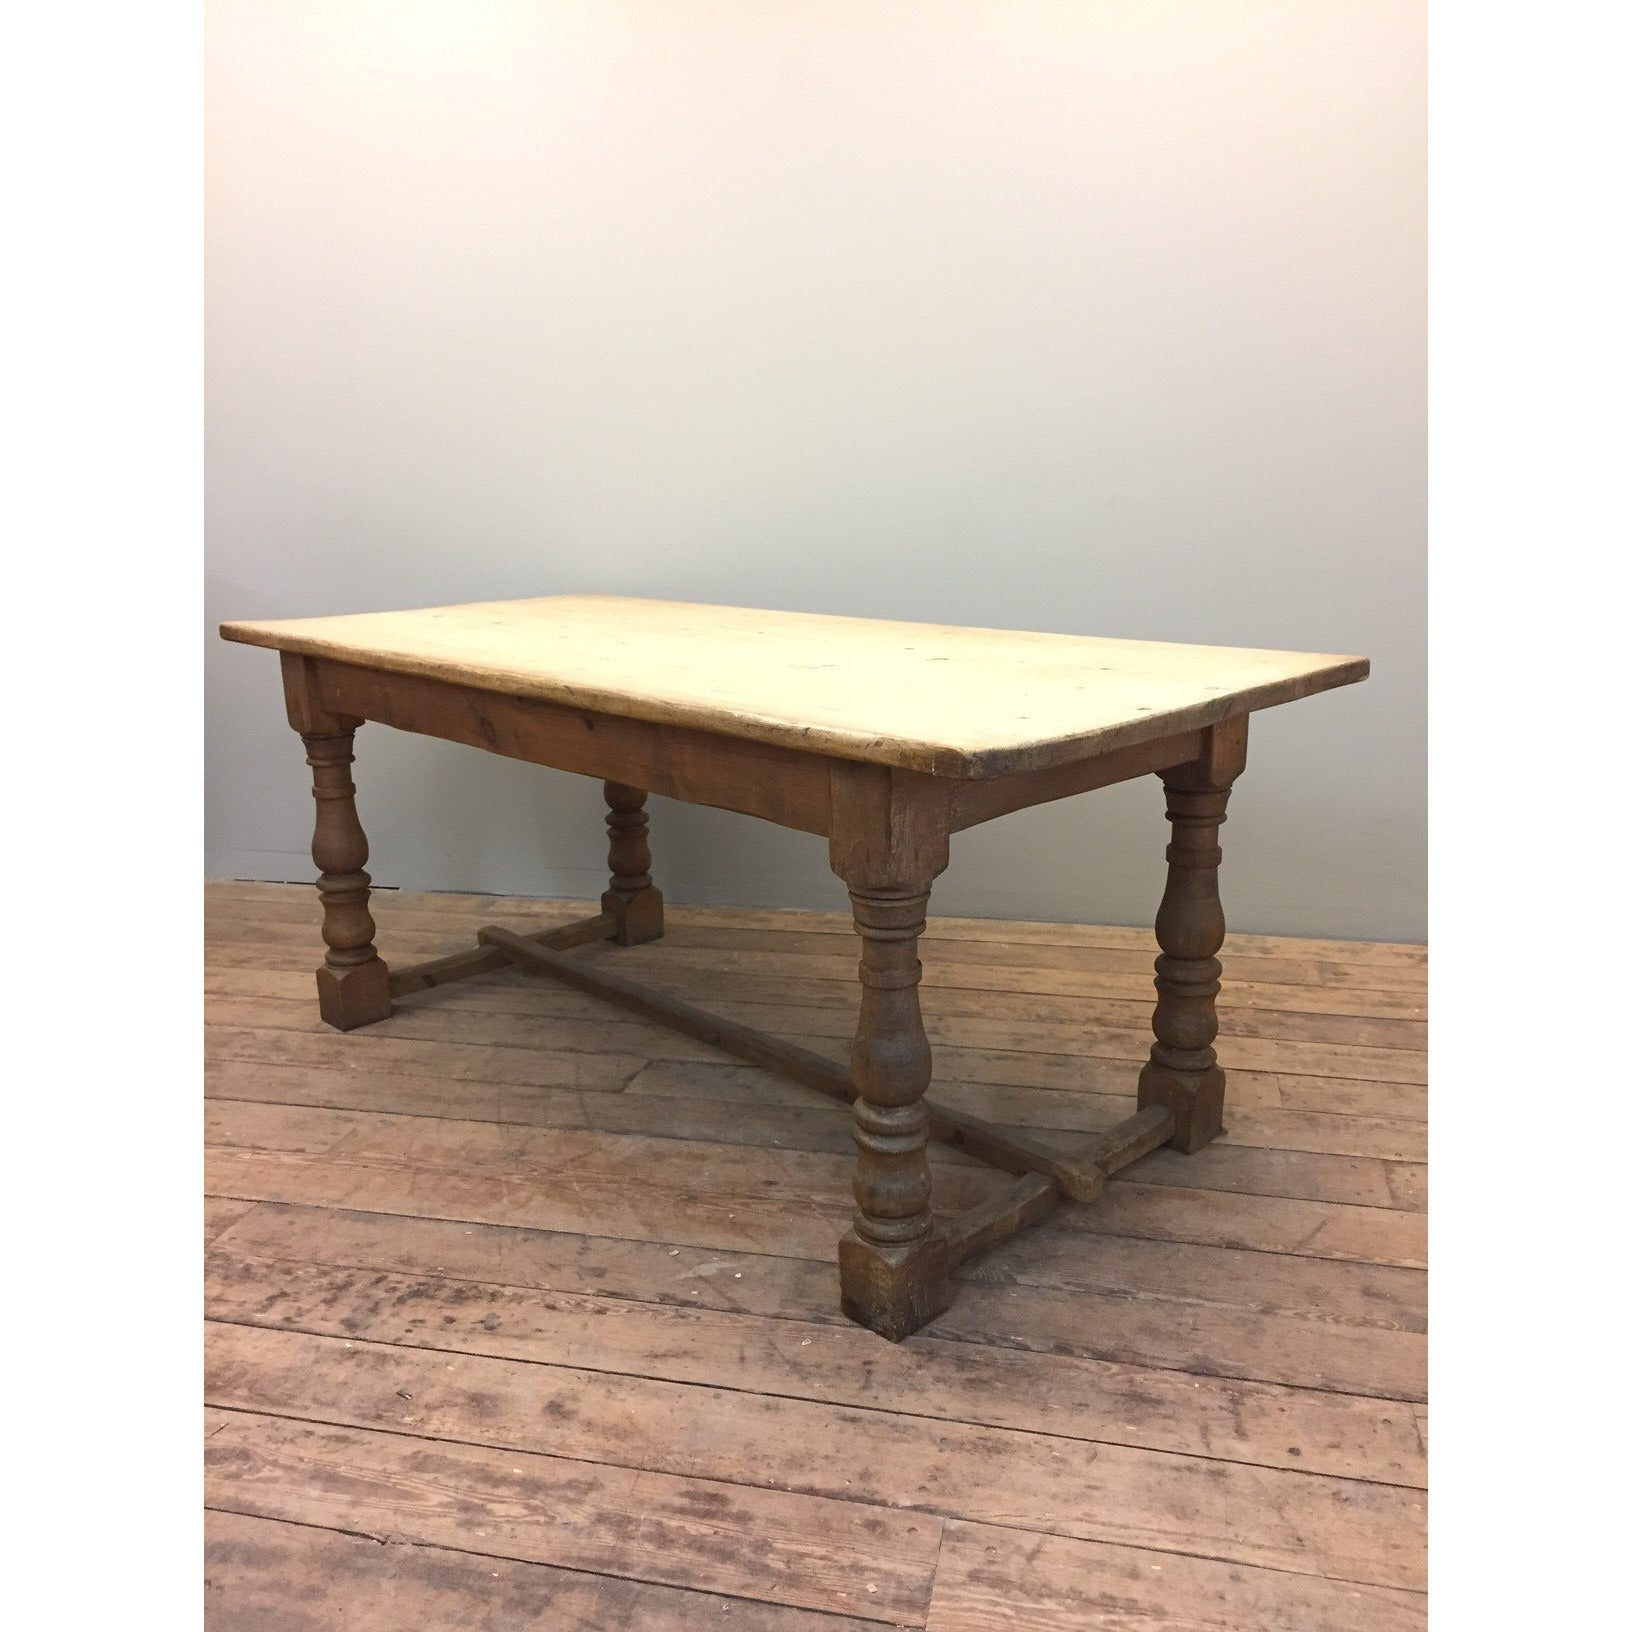 Scrubbed top pine kitchen table – YEW TREE BARN